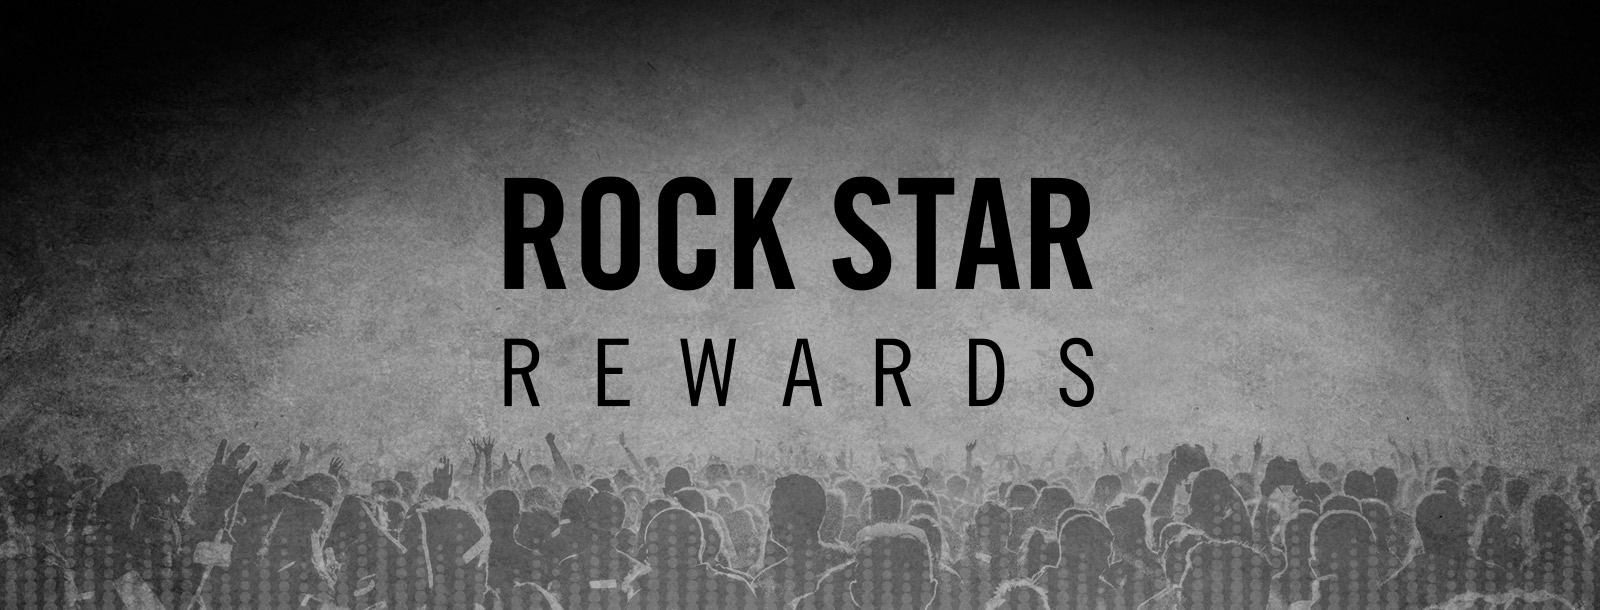 rock star rewards slider